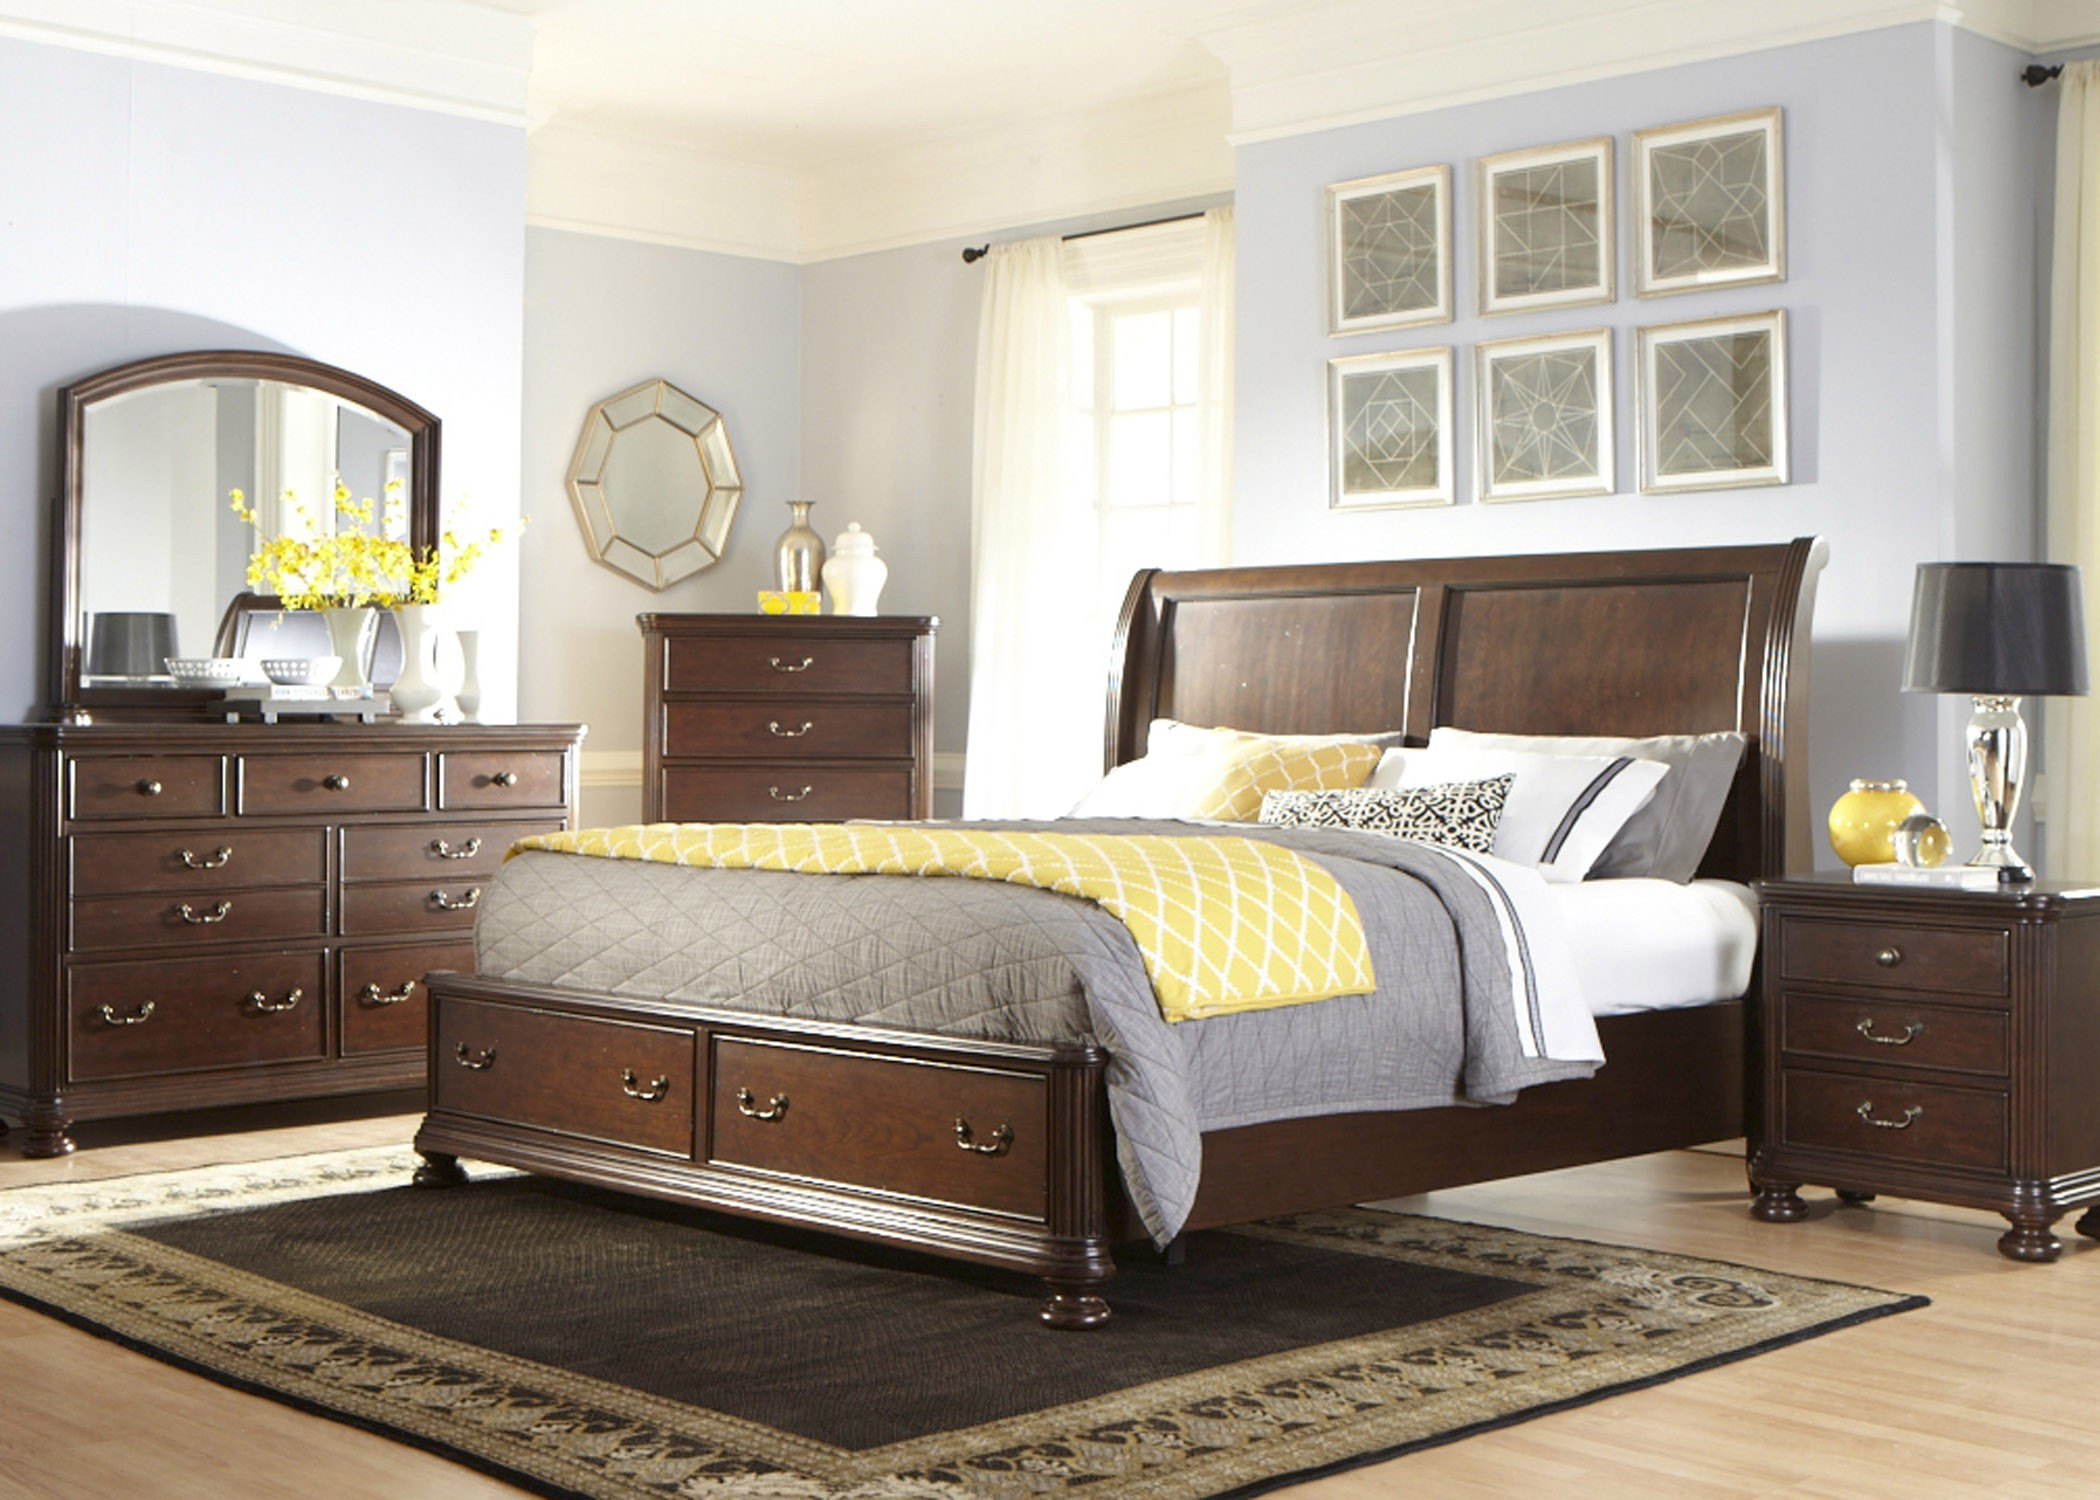 Places To Get Bedroom Sets Of Covington Place Sleigh Bedroom Set 888 Br Qsl Liberty